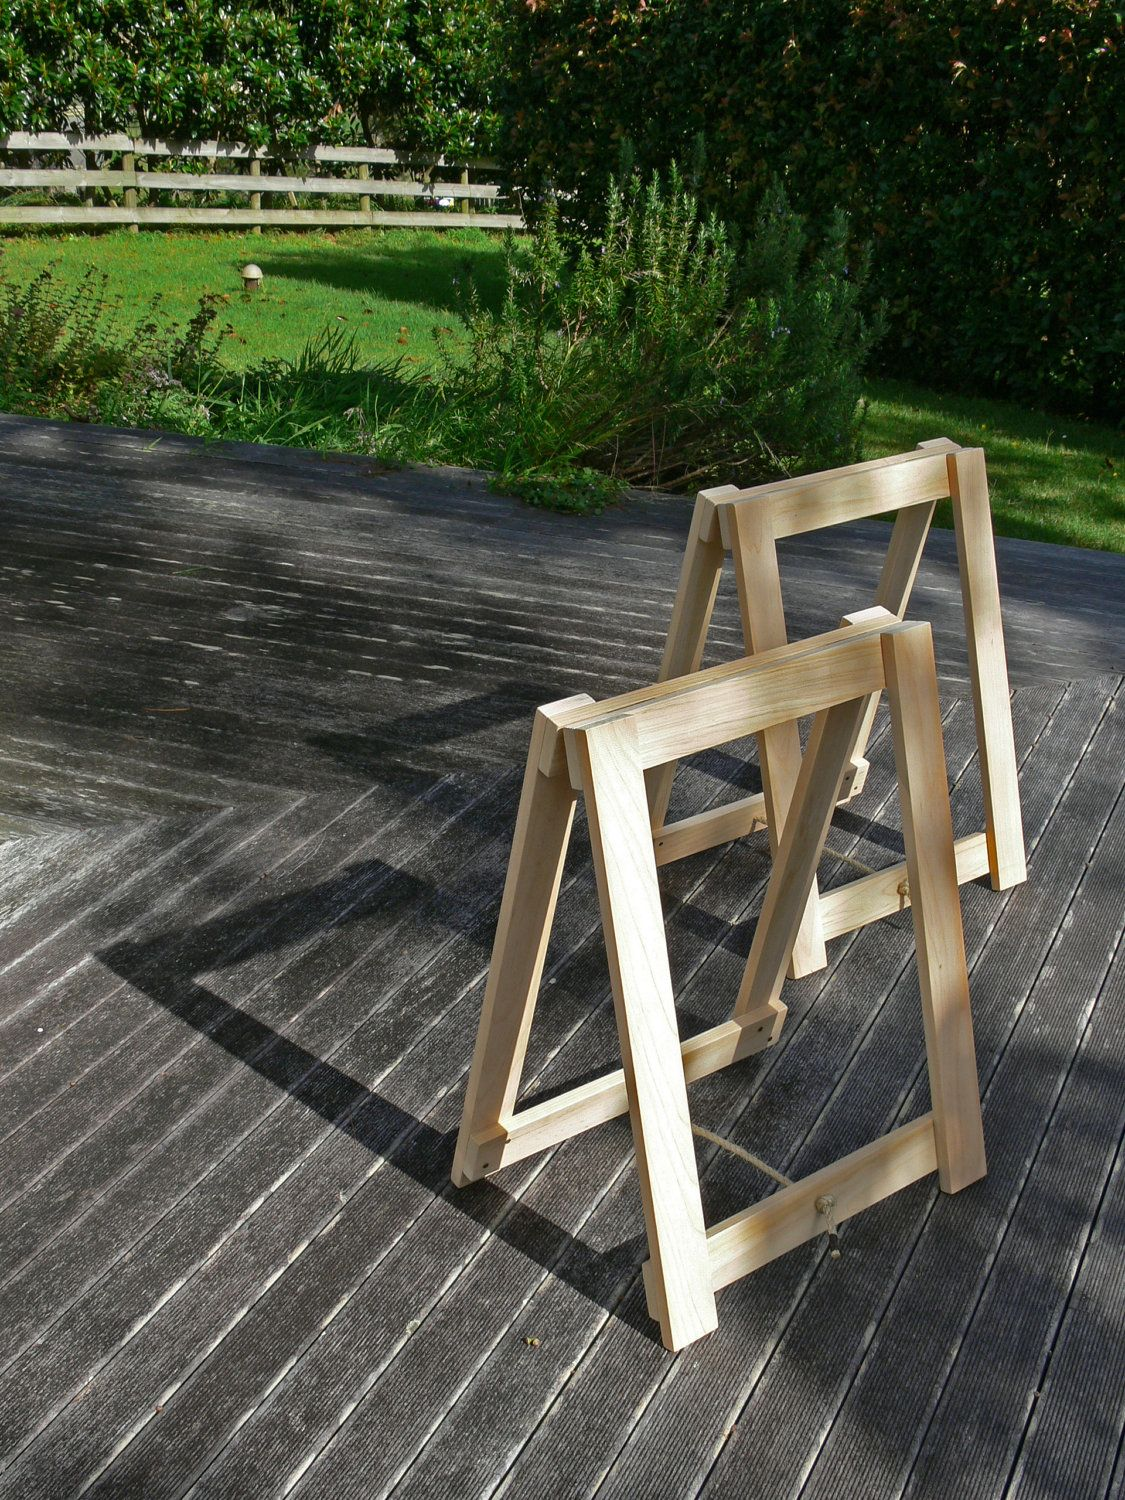 Genial Trestle Table Legs DIY Guide PDF Bock 2012 By Tomoro On Etsy